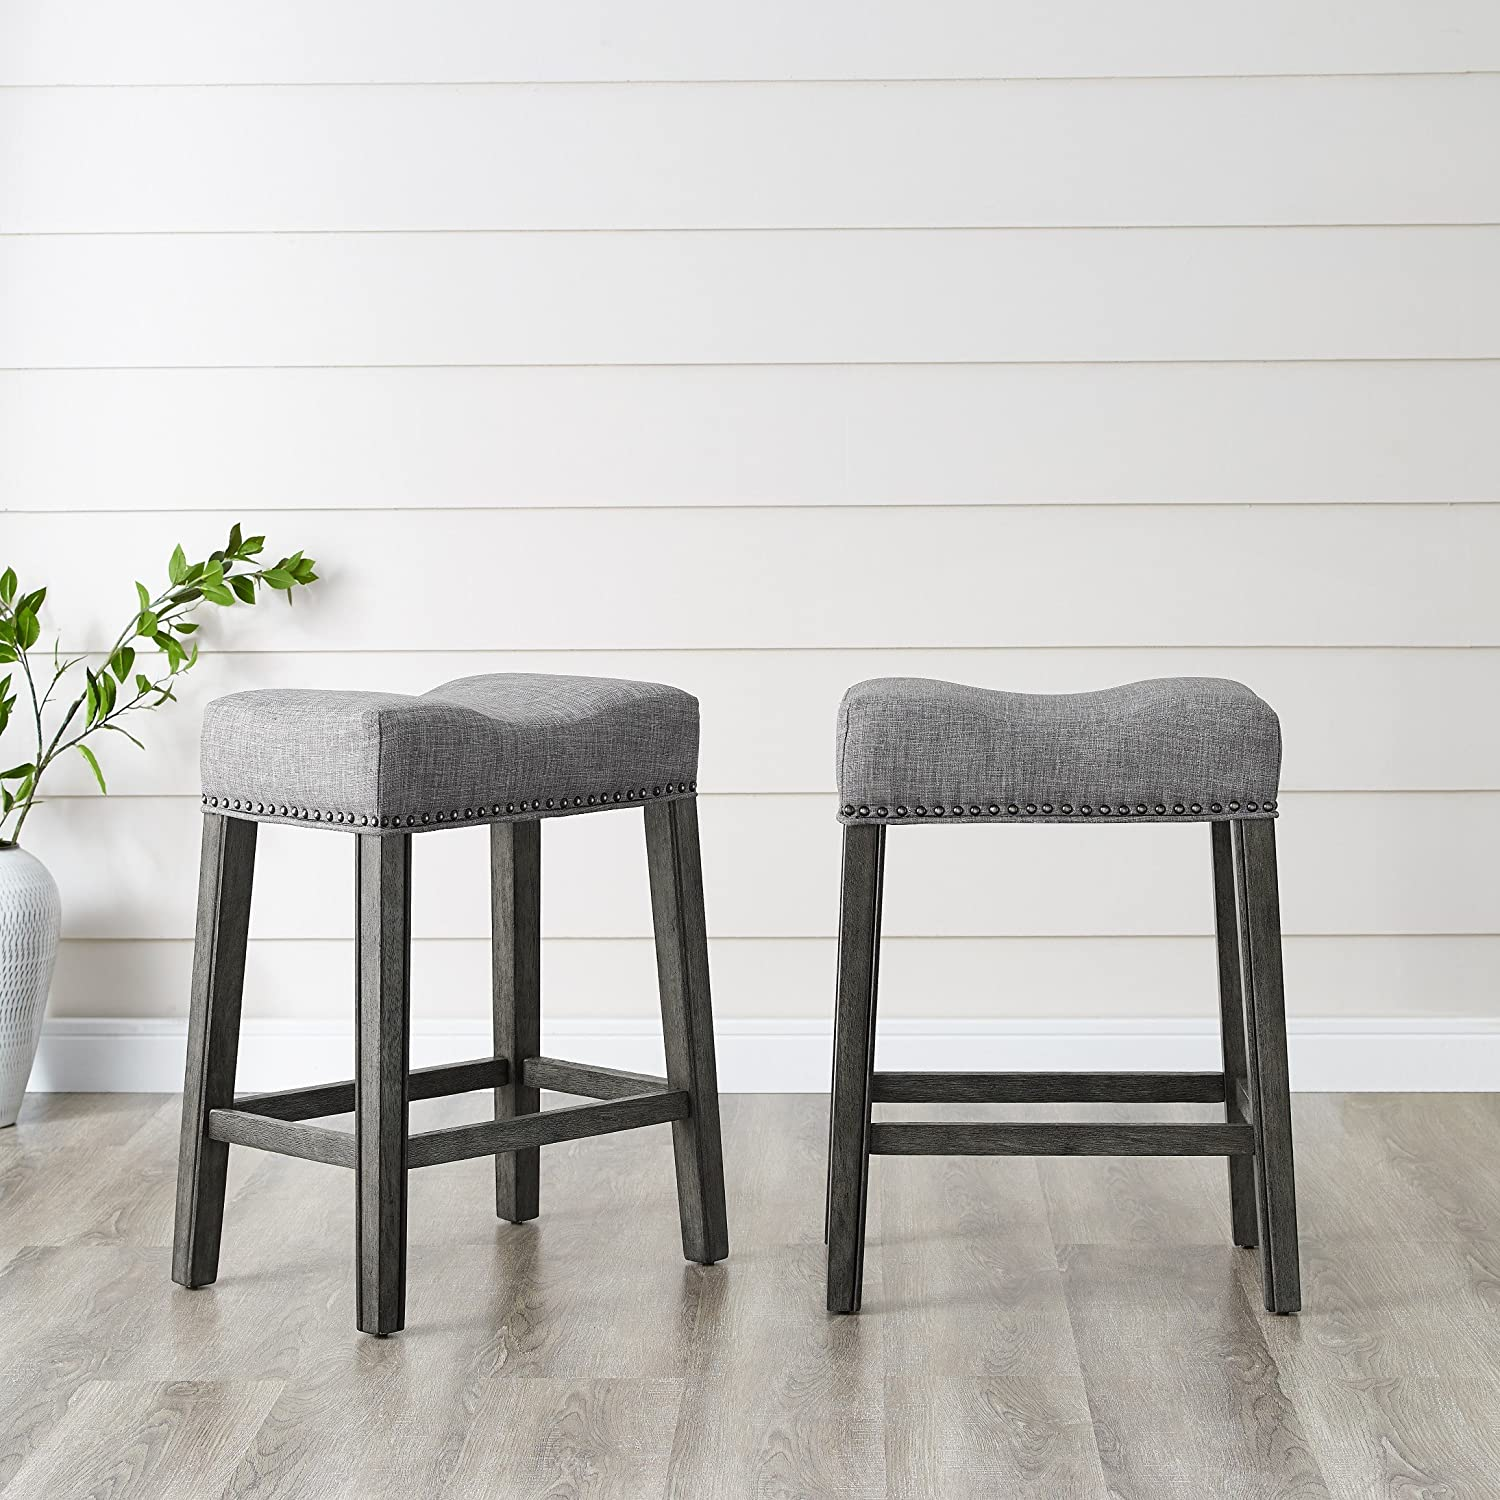 """Roundhill Furniture Coco Upholstered Backless Saddle Seat Counter Stools 24"""" Height Set of 2, Gray"""